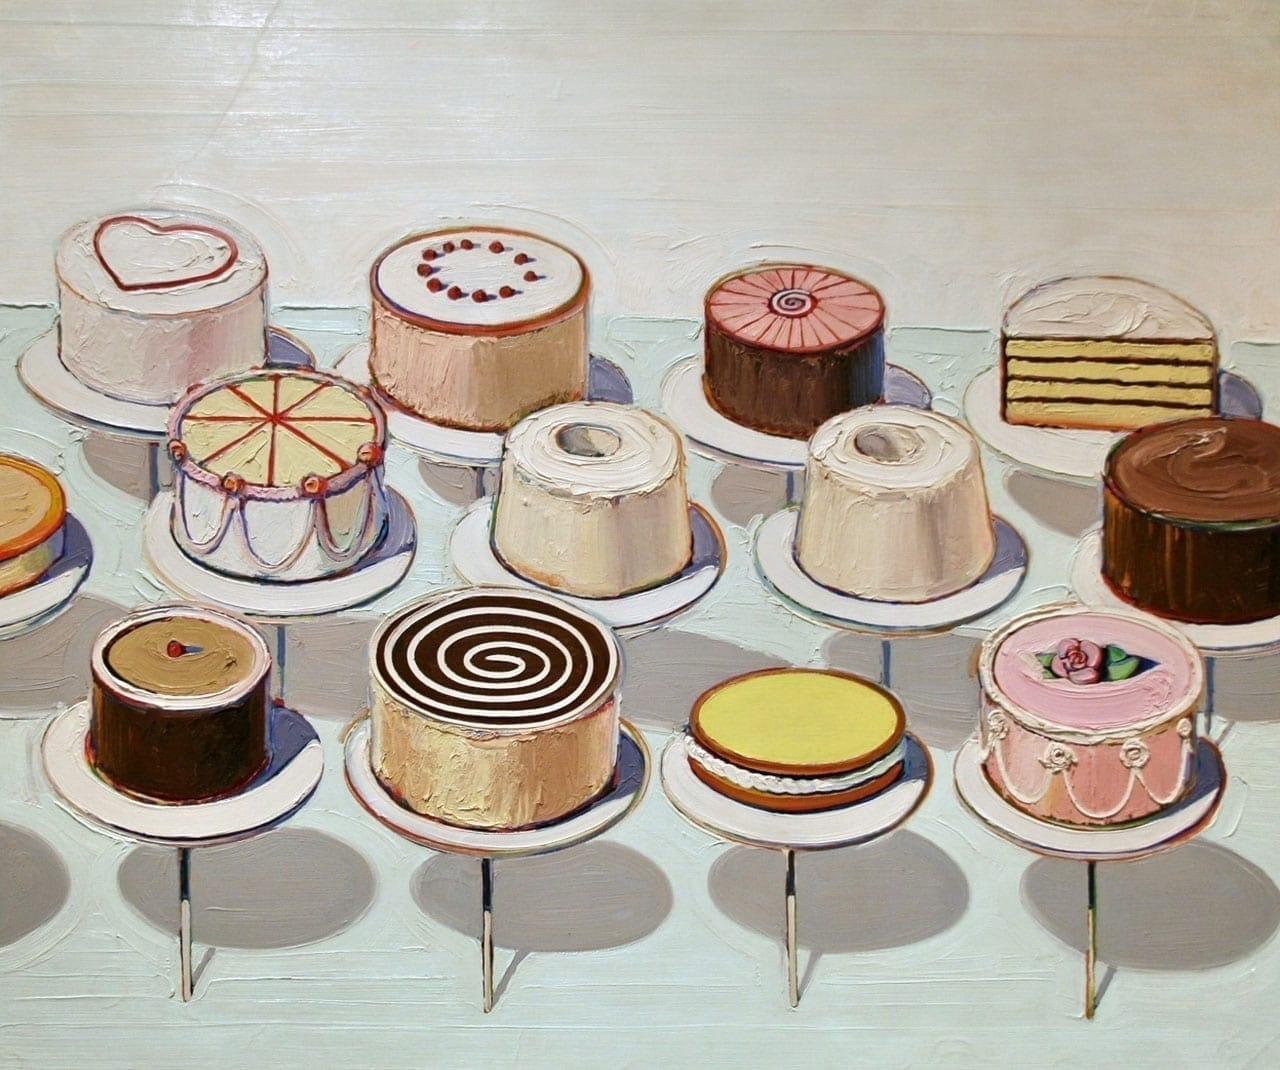 Wayne Thiebaud, Cakes, 1963. Image: via Wikimedia Commons